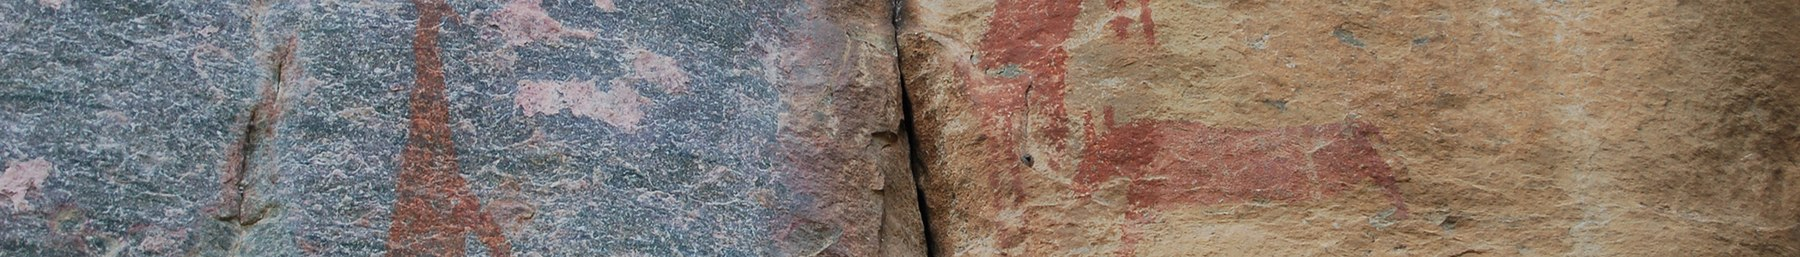 Tsodilo Hills banner Rock paintings.jpg